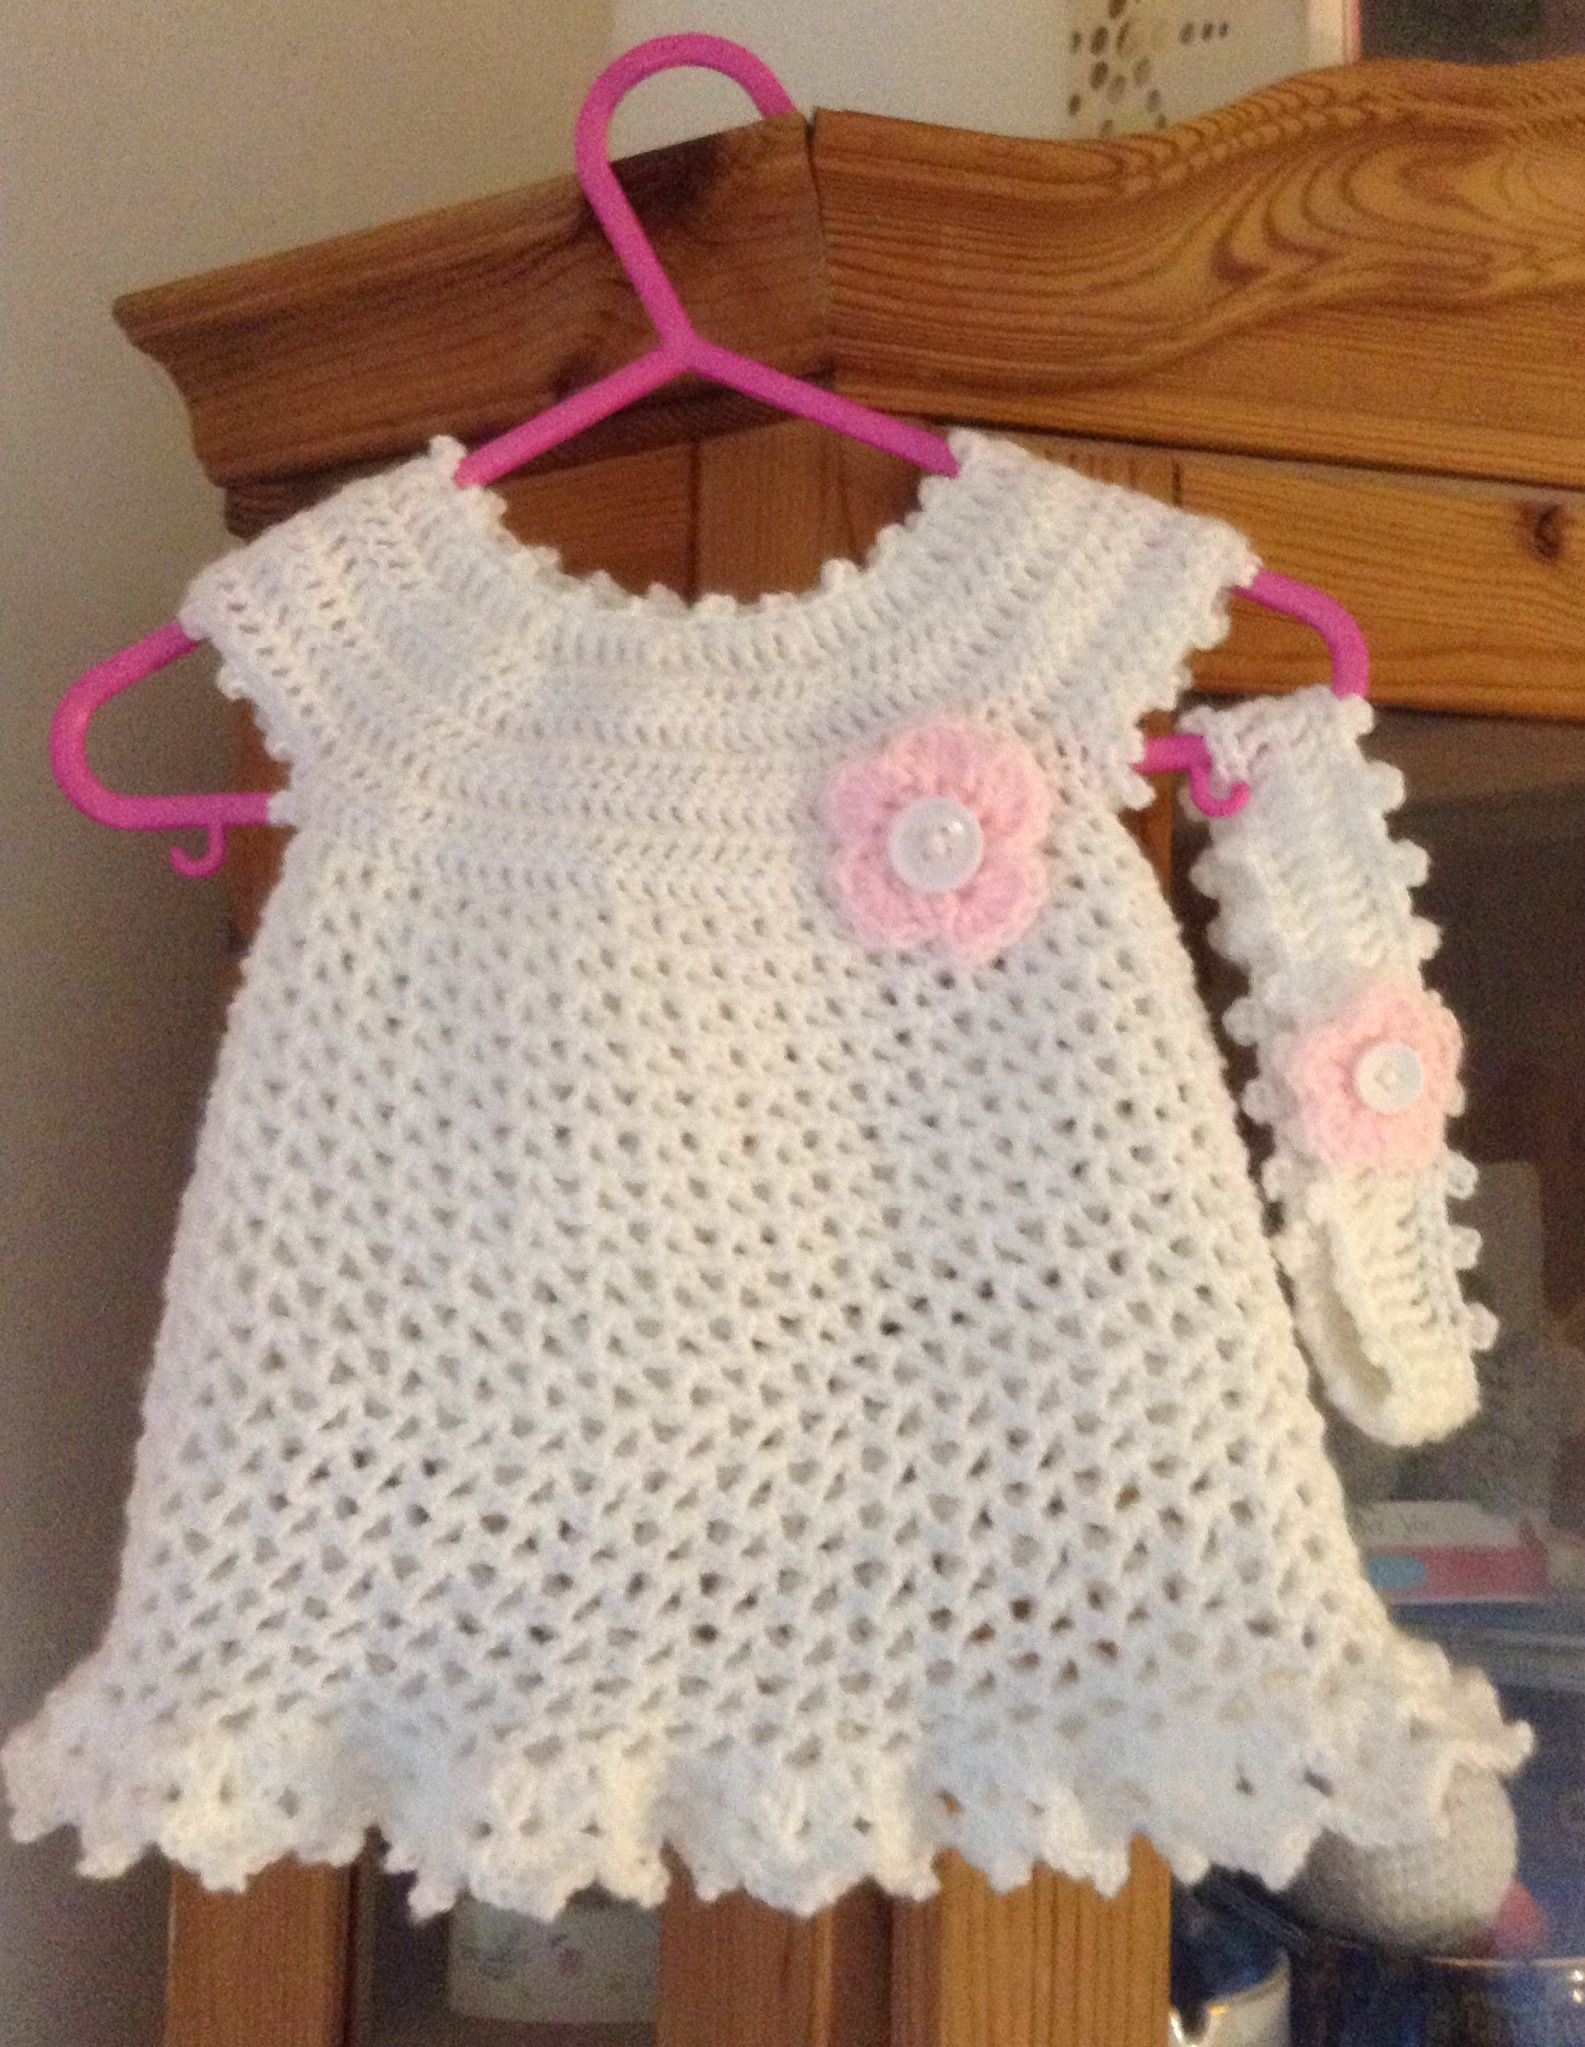 Baby girls little Sweetie crochet dress and matching